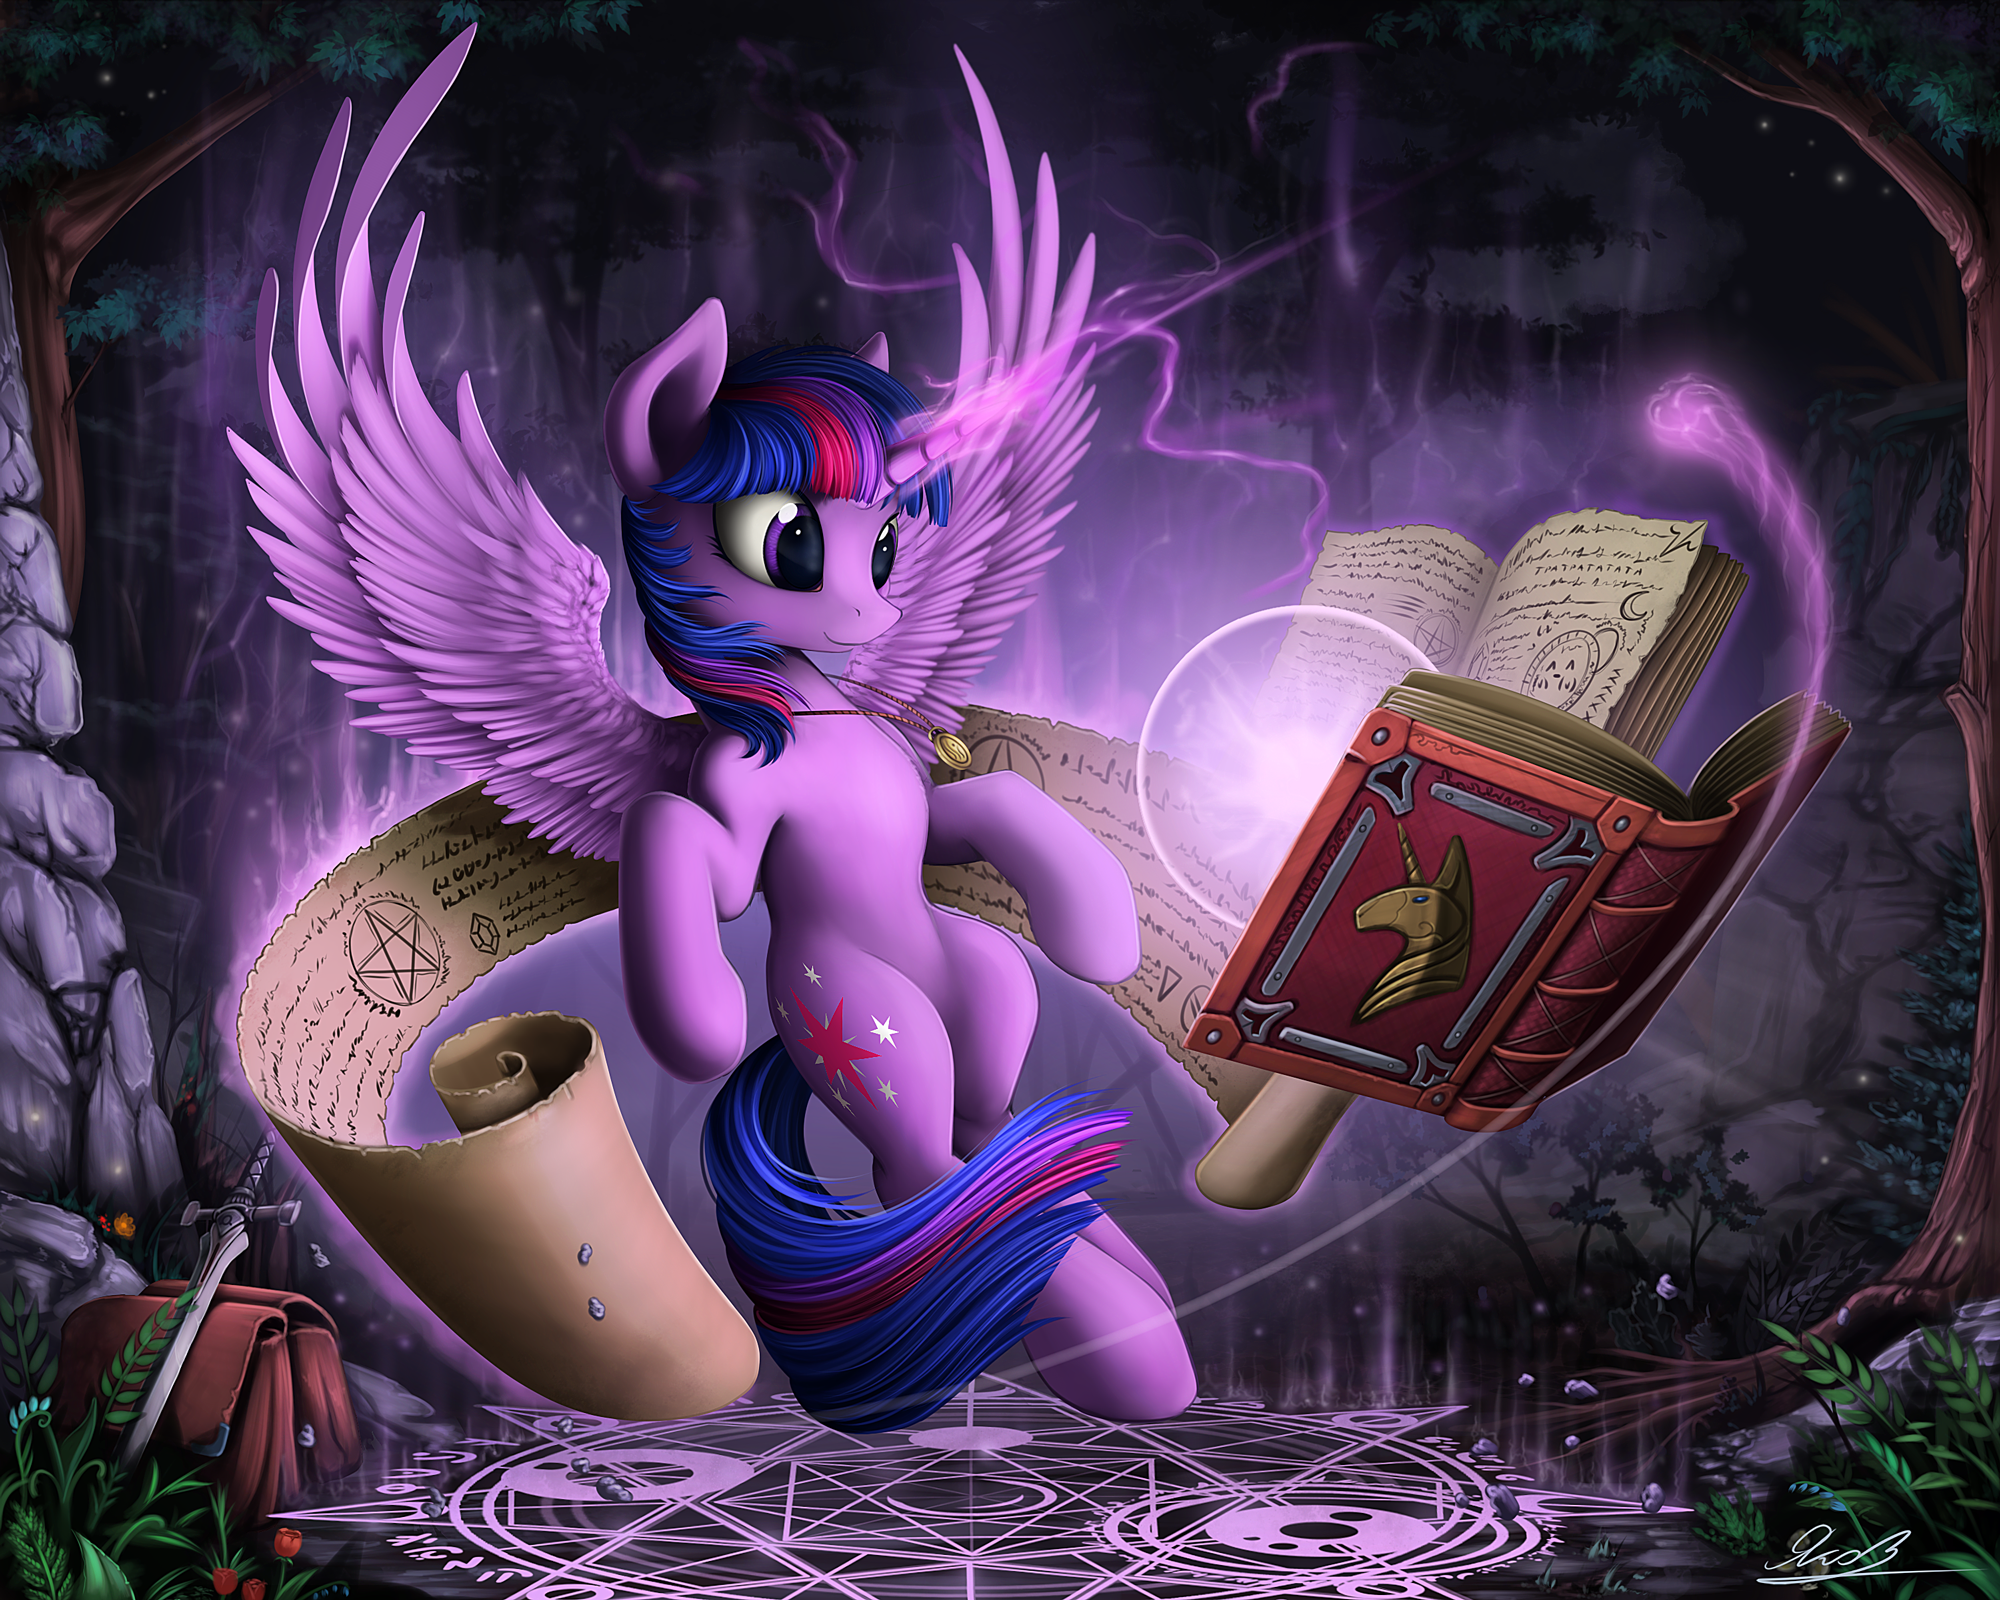 twilight_sparkle_by_yakovlev_vad-d76eh19